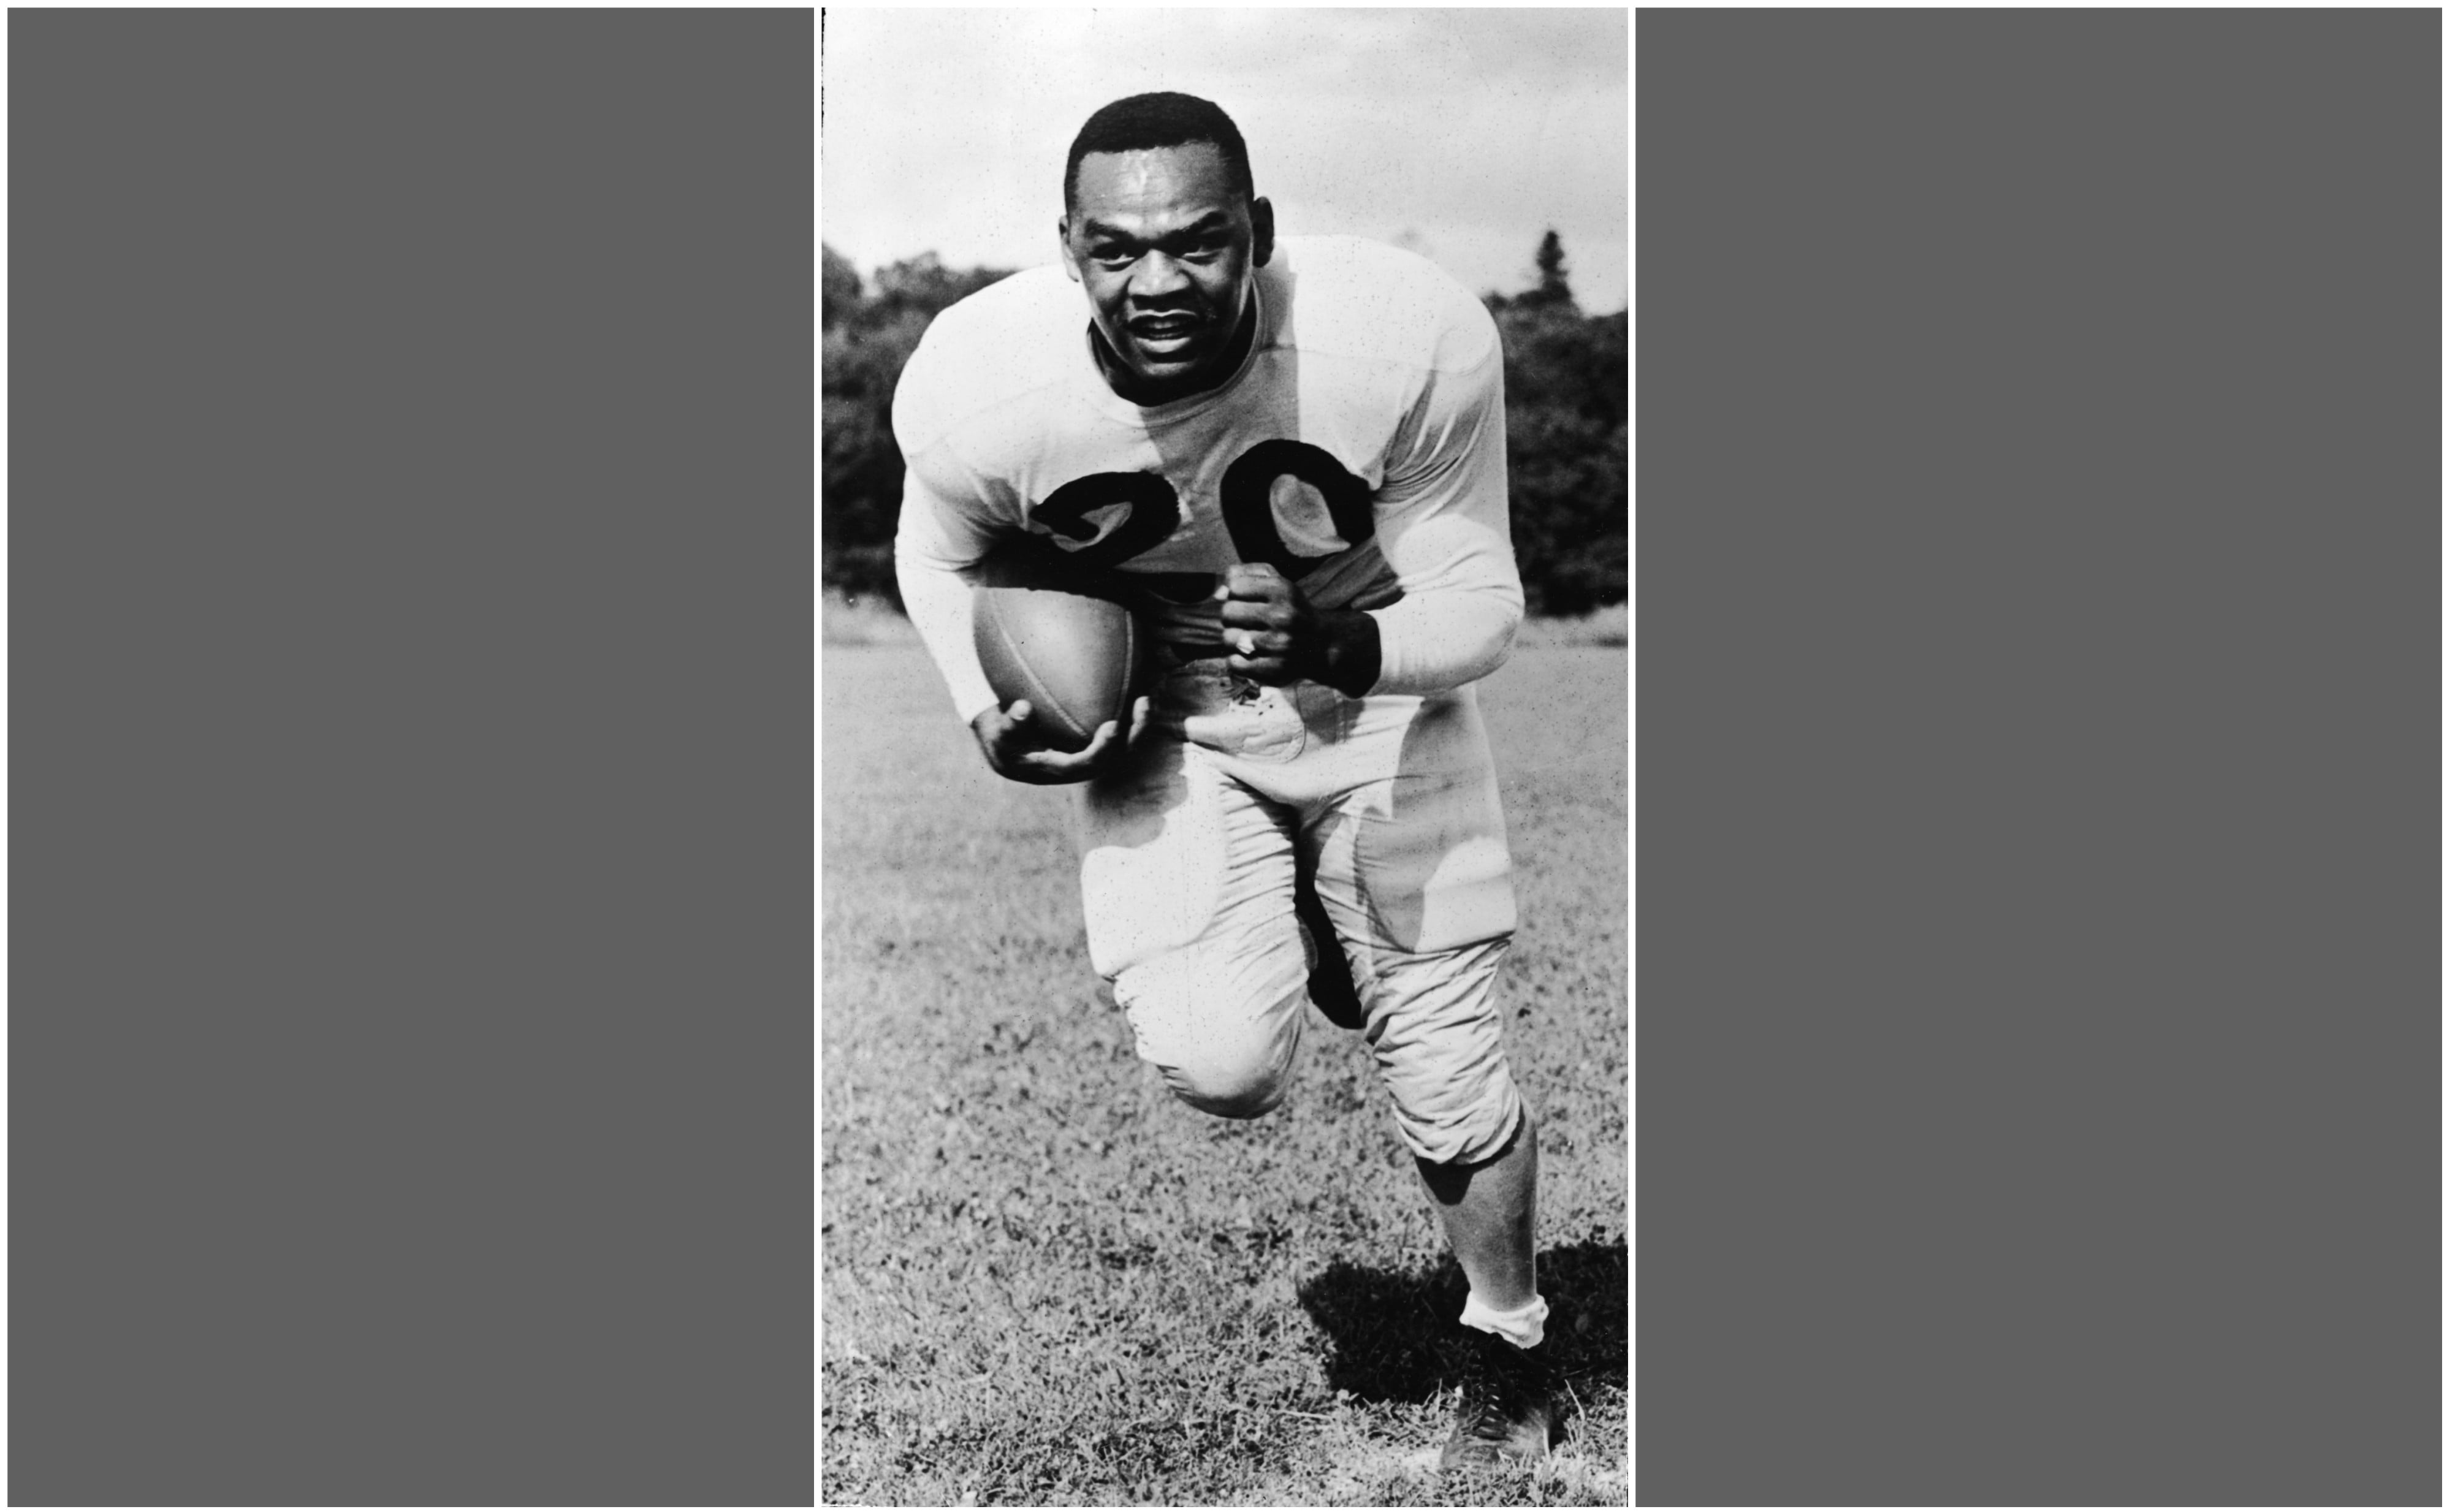 George Taliaferro, first black player drafted by NFL, dies ...